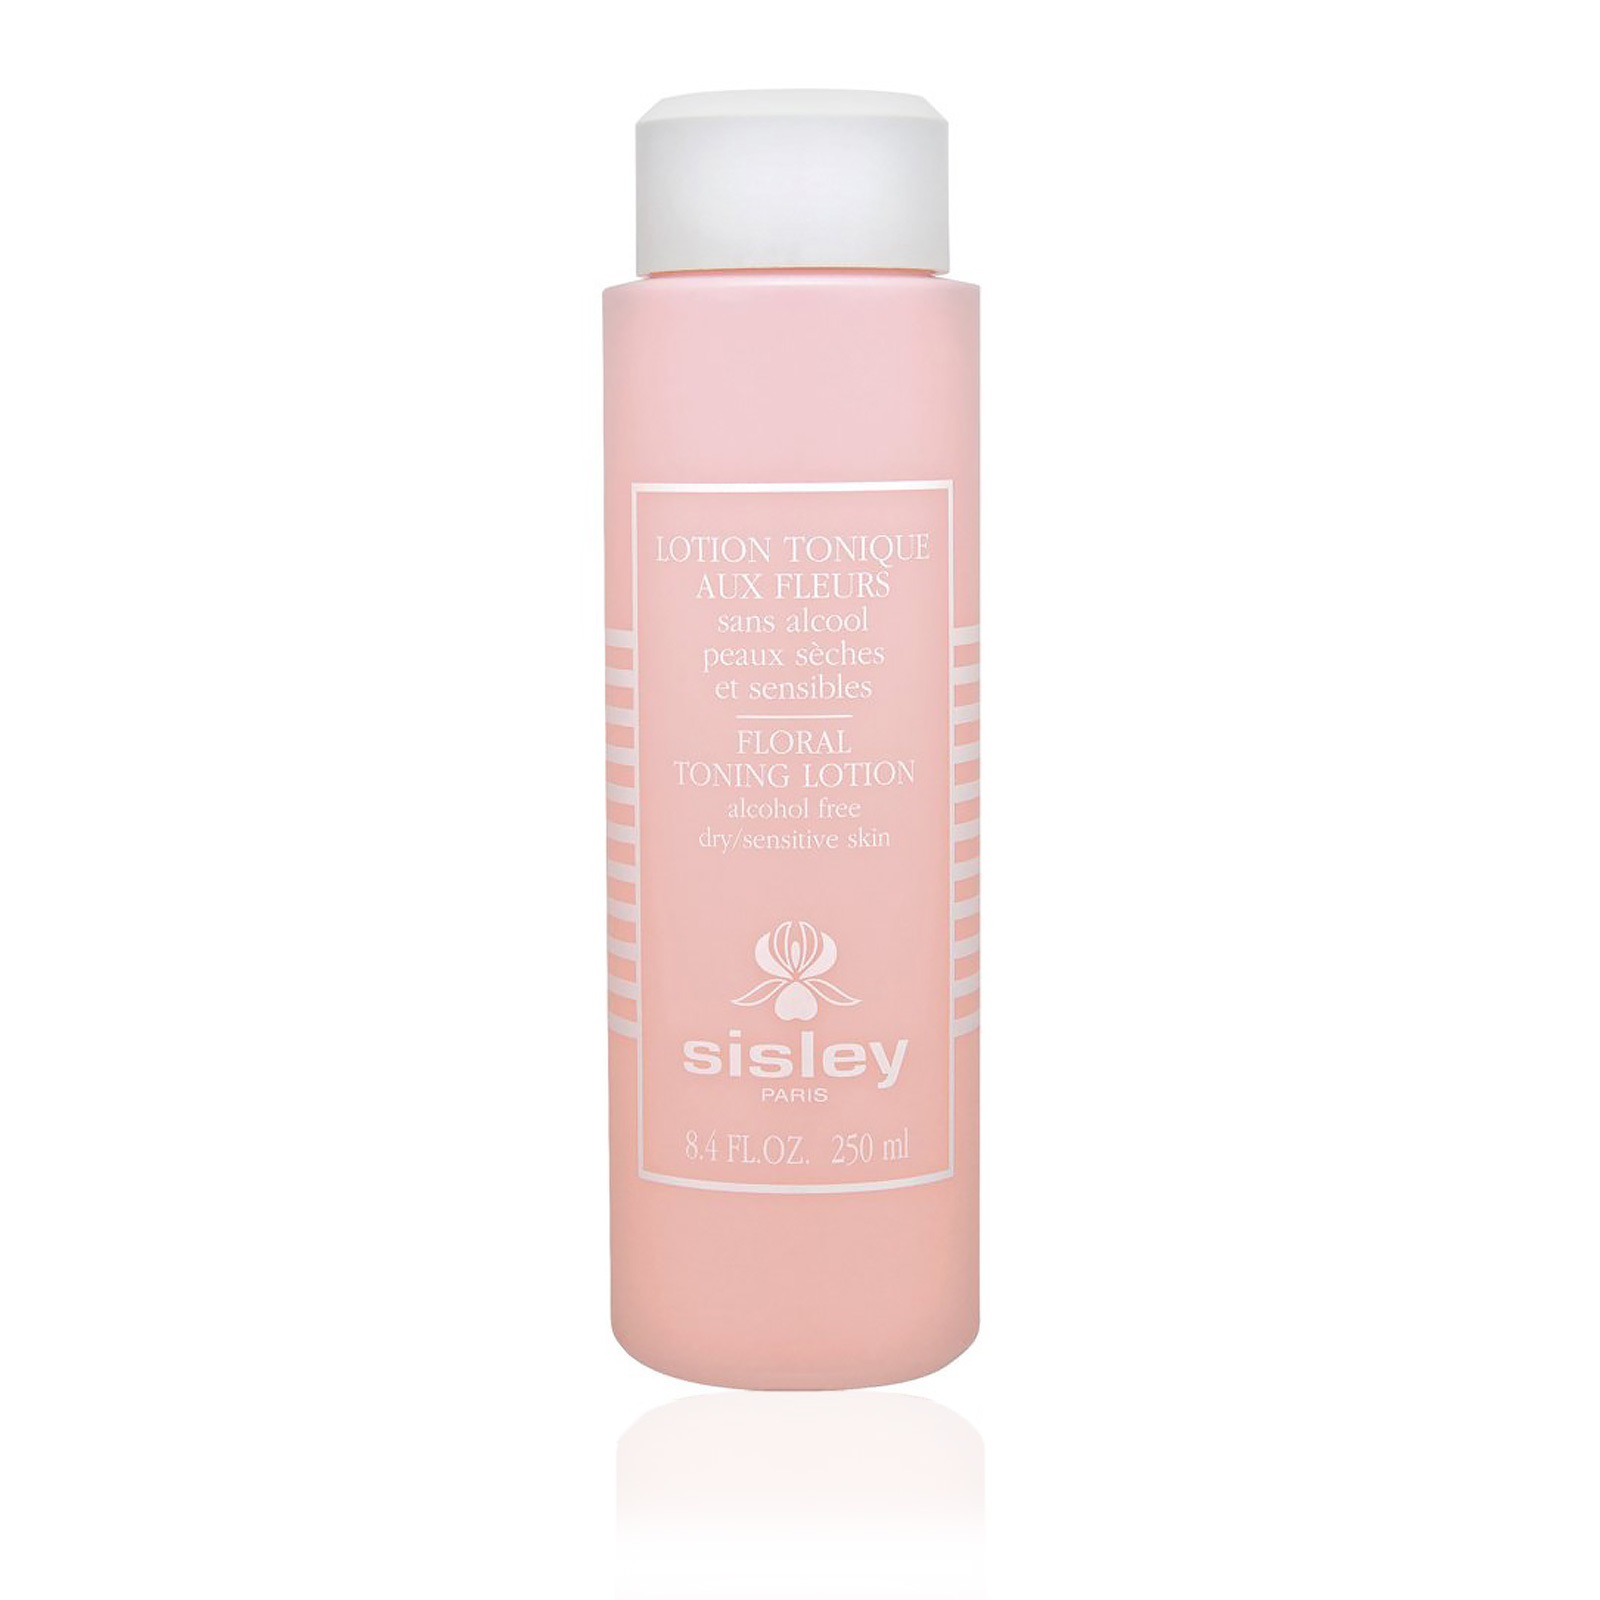 Floral Toning Lotion Alcohol-Free